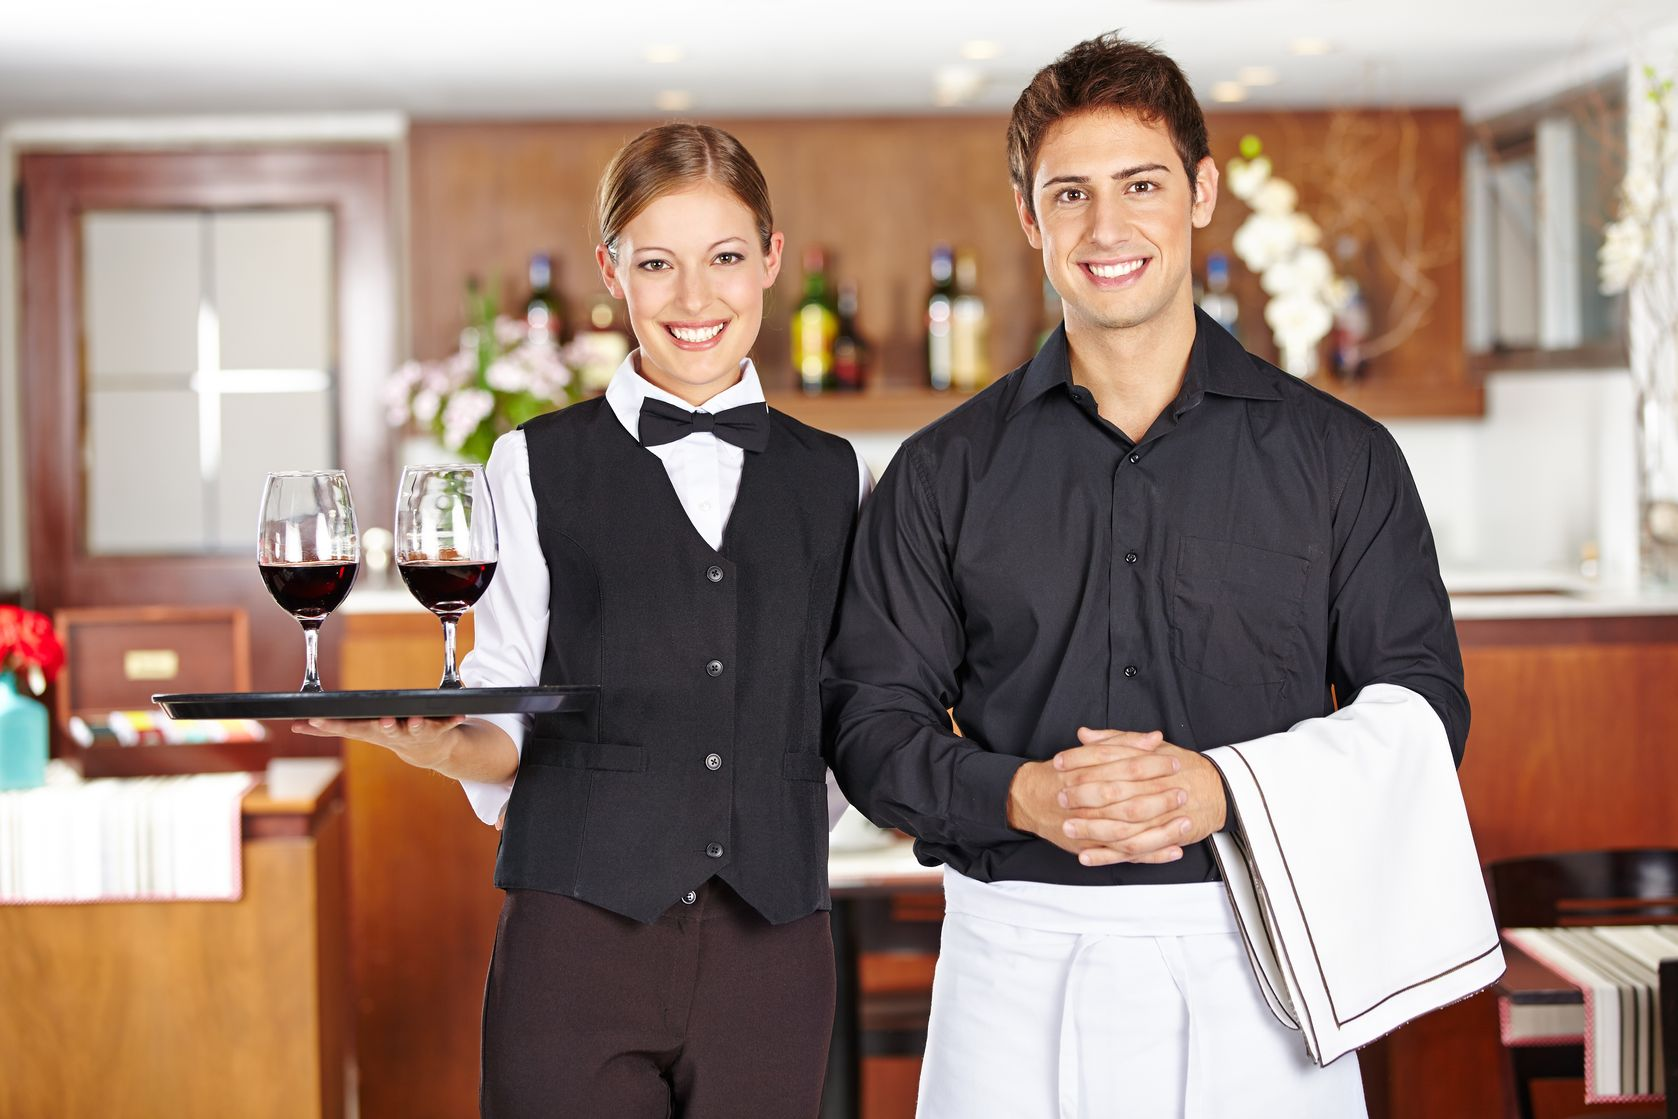 Hospitality and Catering Business for sale in Mackay